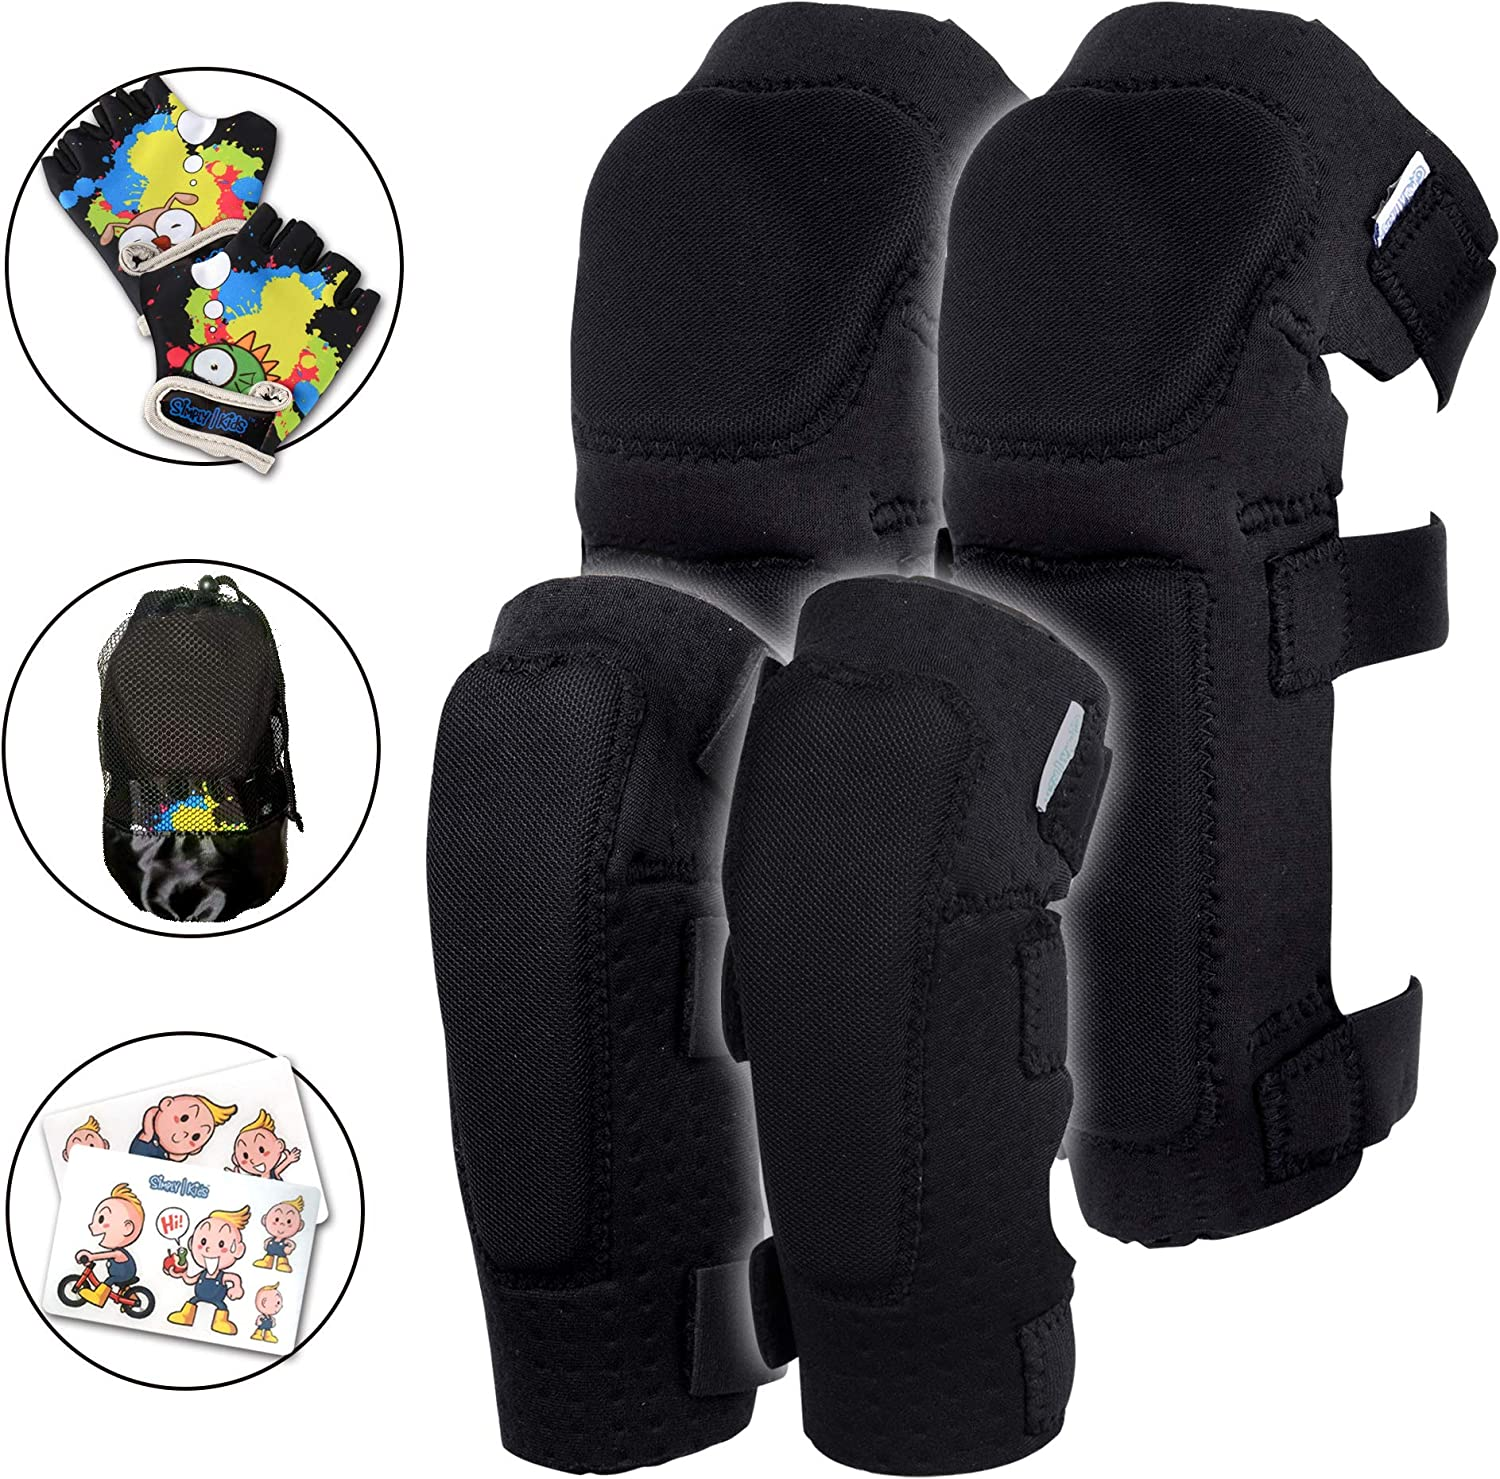 Simply Kids Soft Knee and Elbow Pads